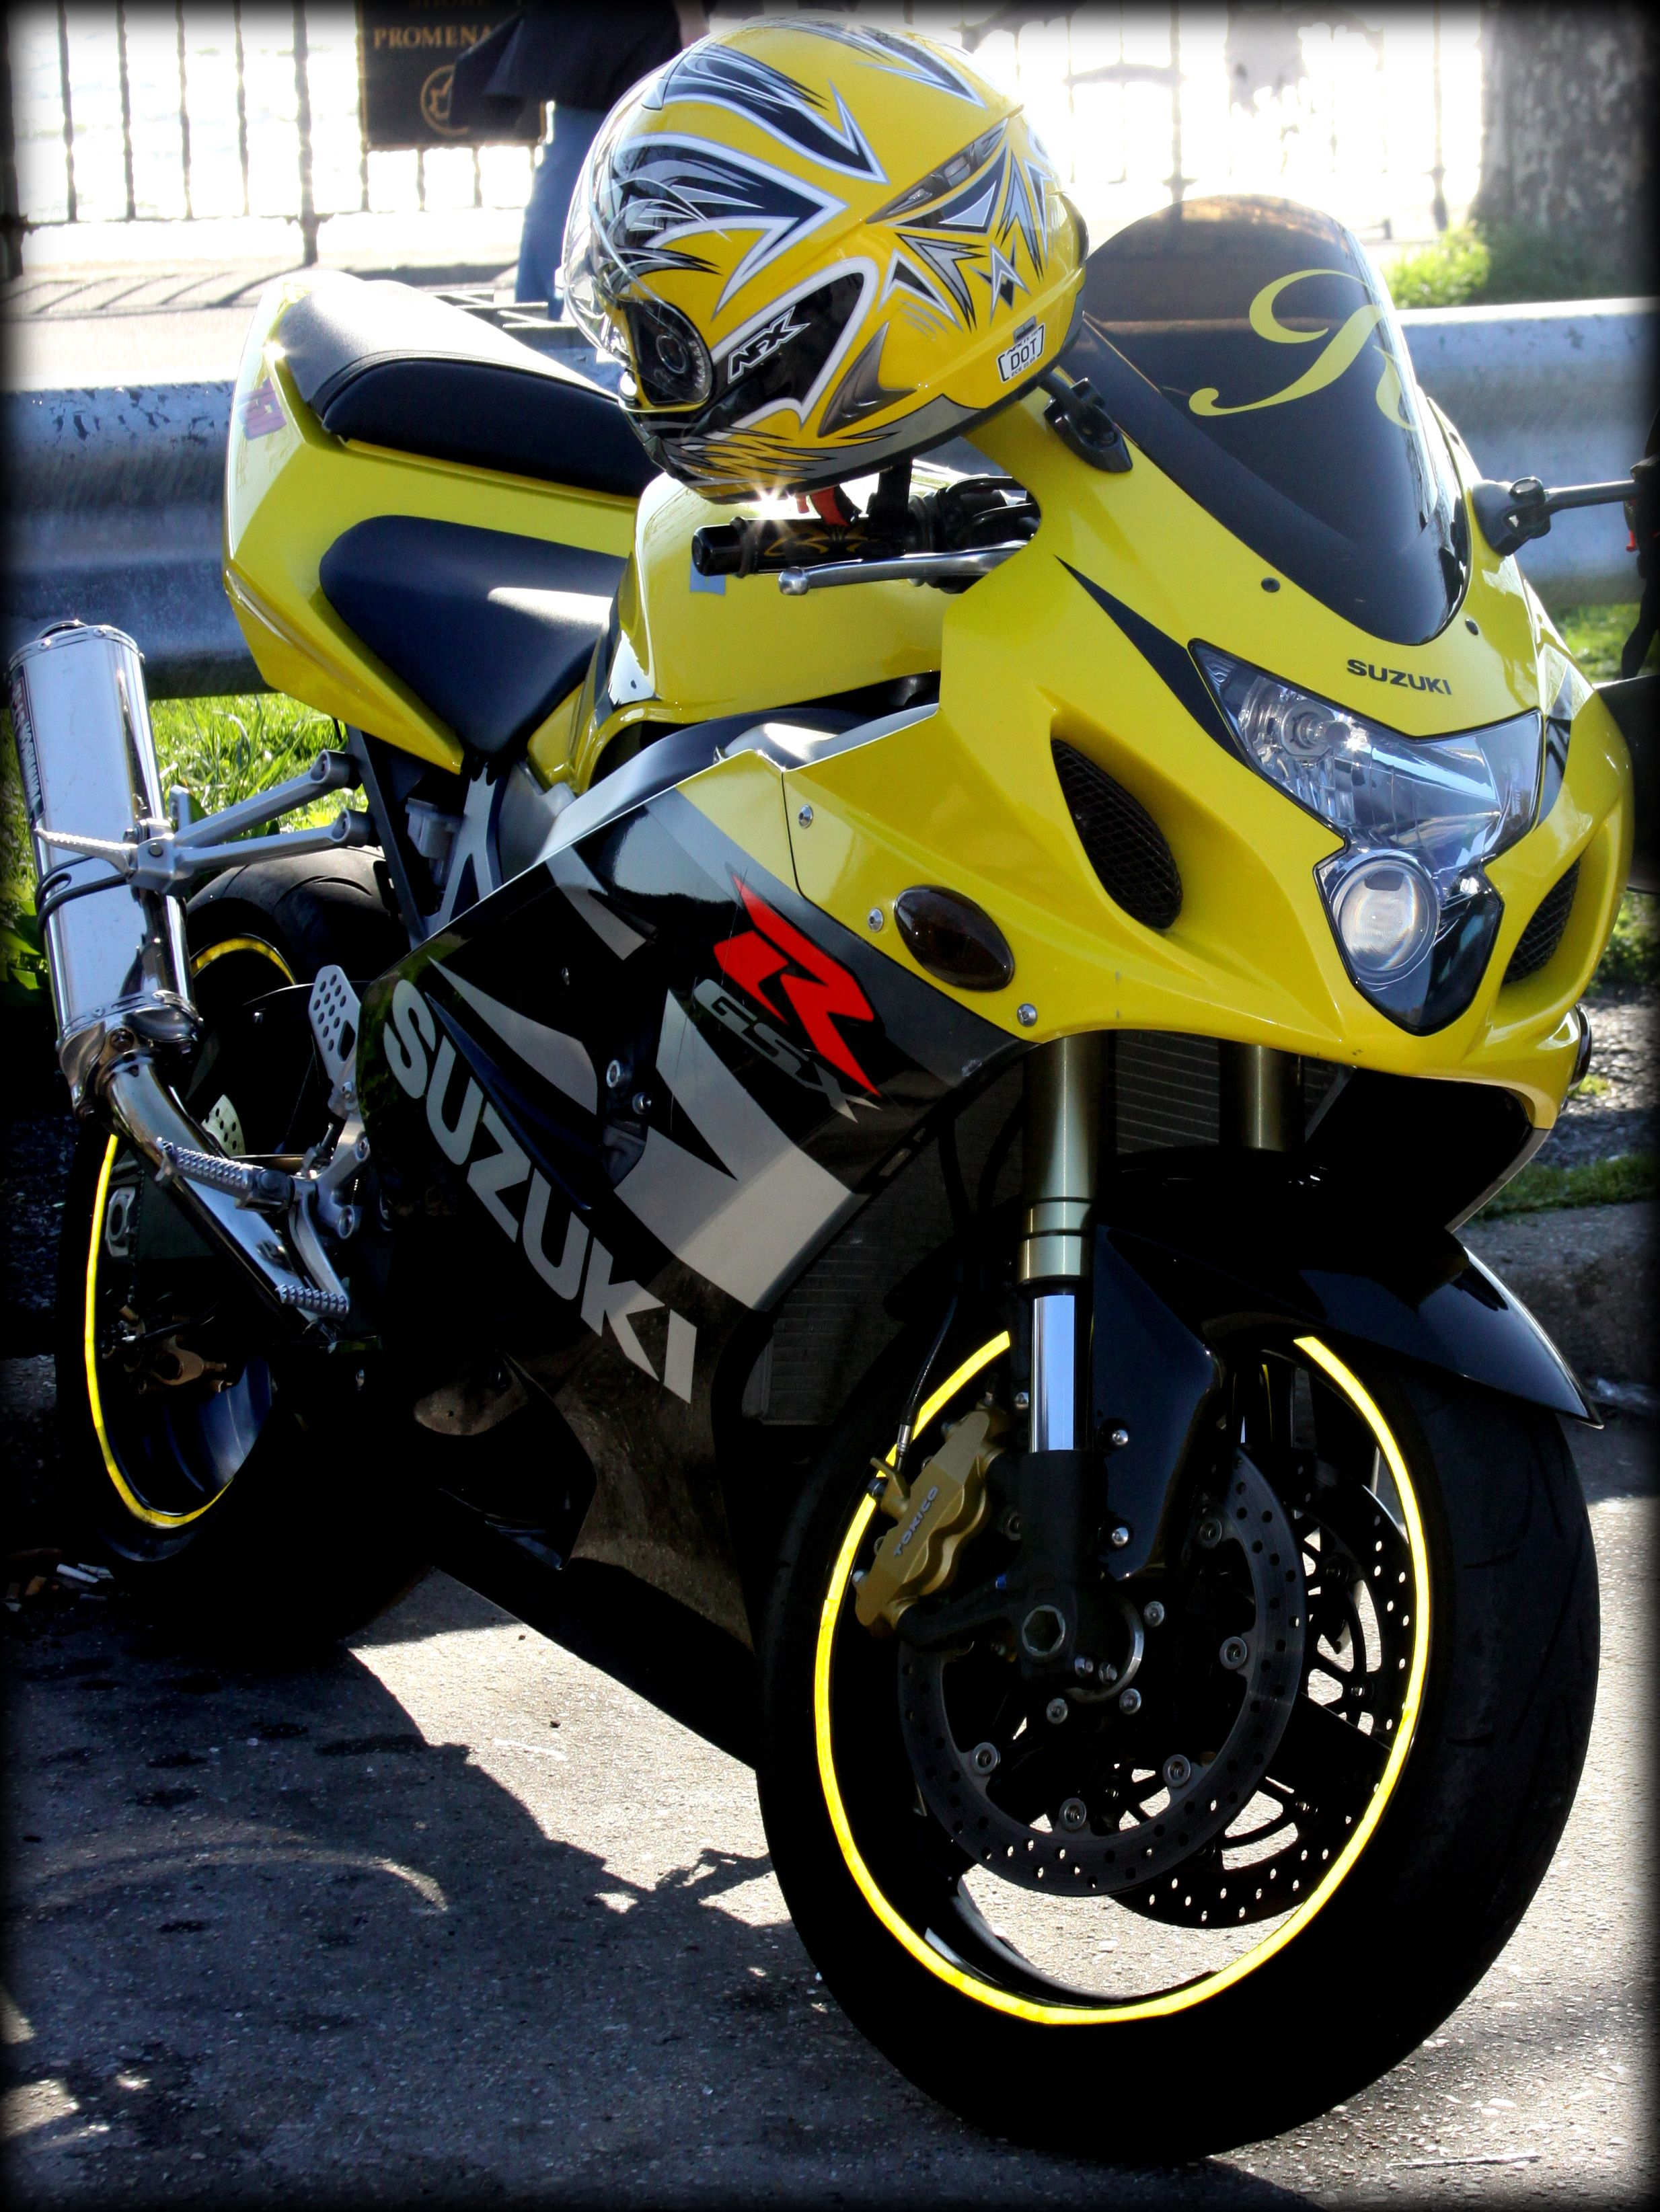 Yellow Suzuki Motorcycle near Verrazano Narrows Bridge, New York by